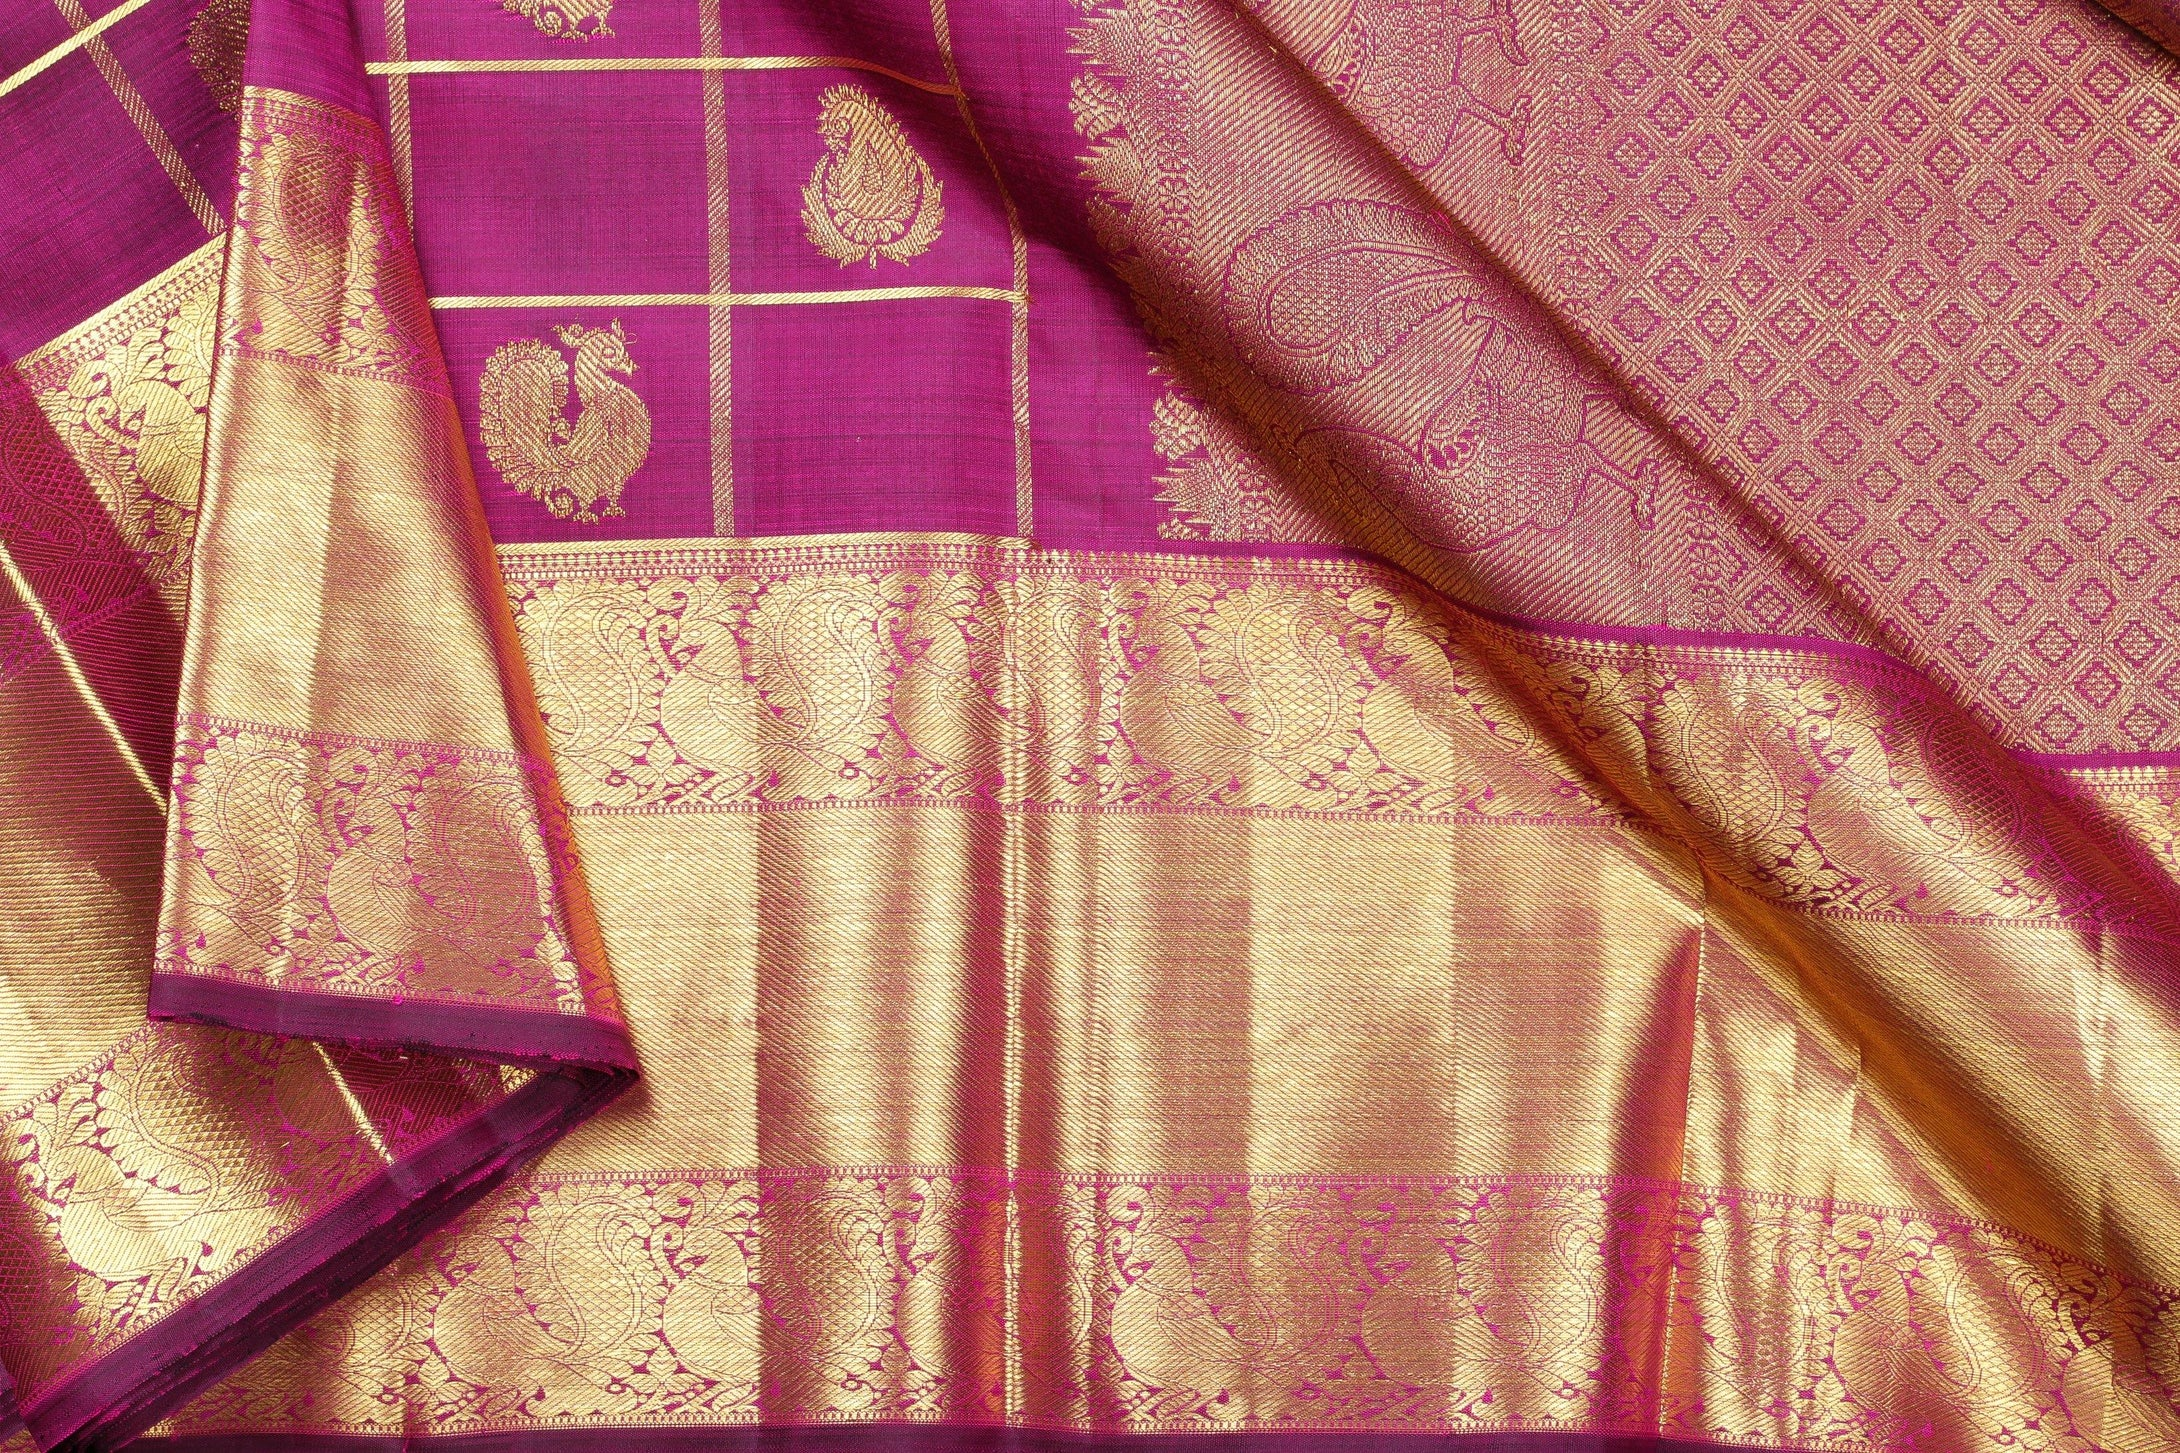 Traditional Design Handwoven Pure Silk Saree - Bridal Saree - PVJU 0618 1480 Archives